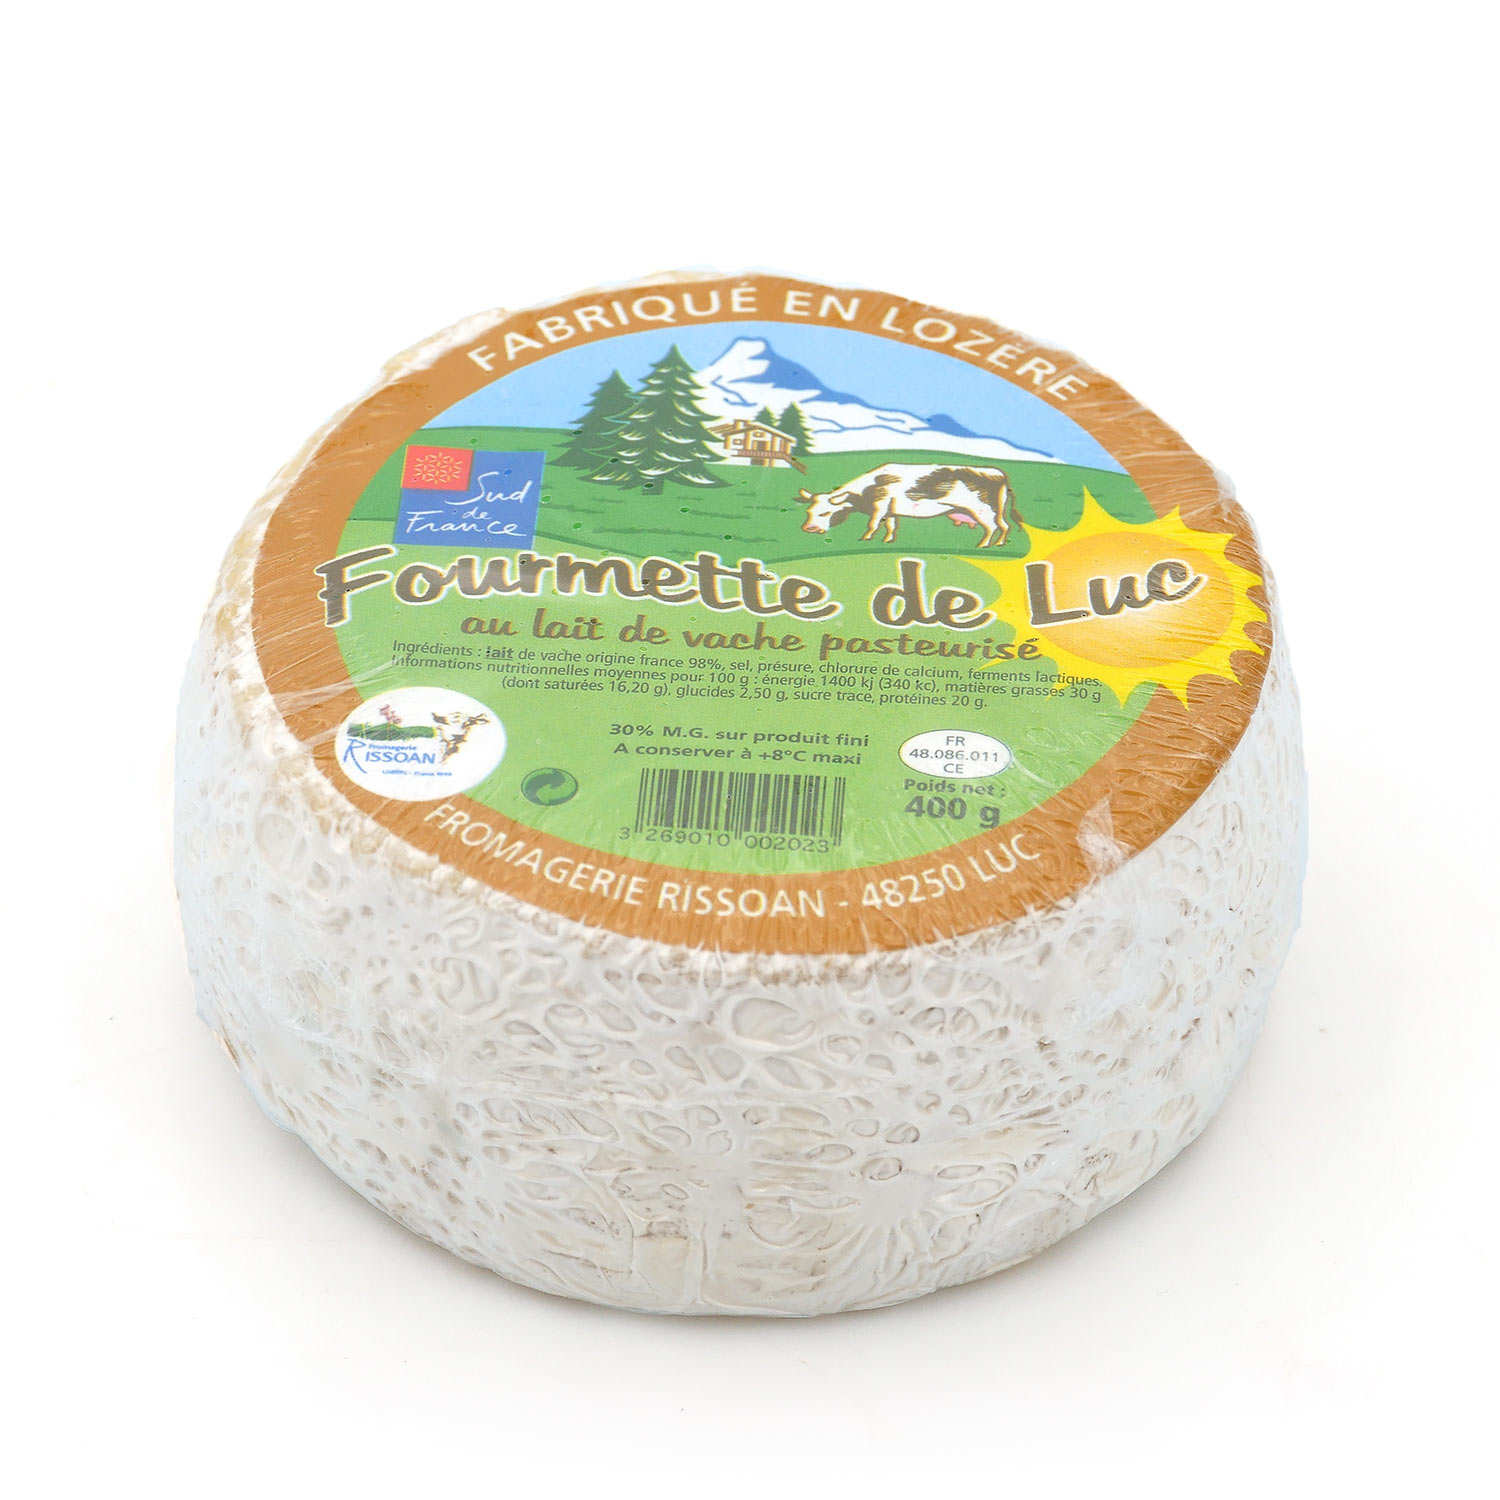 Fourmette De Luc Cheese Made From Pasteurized Cow S Milk From Lozère Fromagerie Rissoan